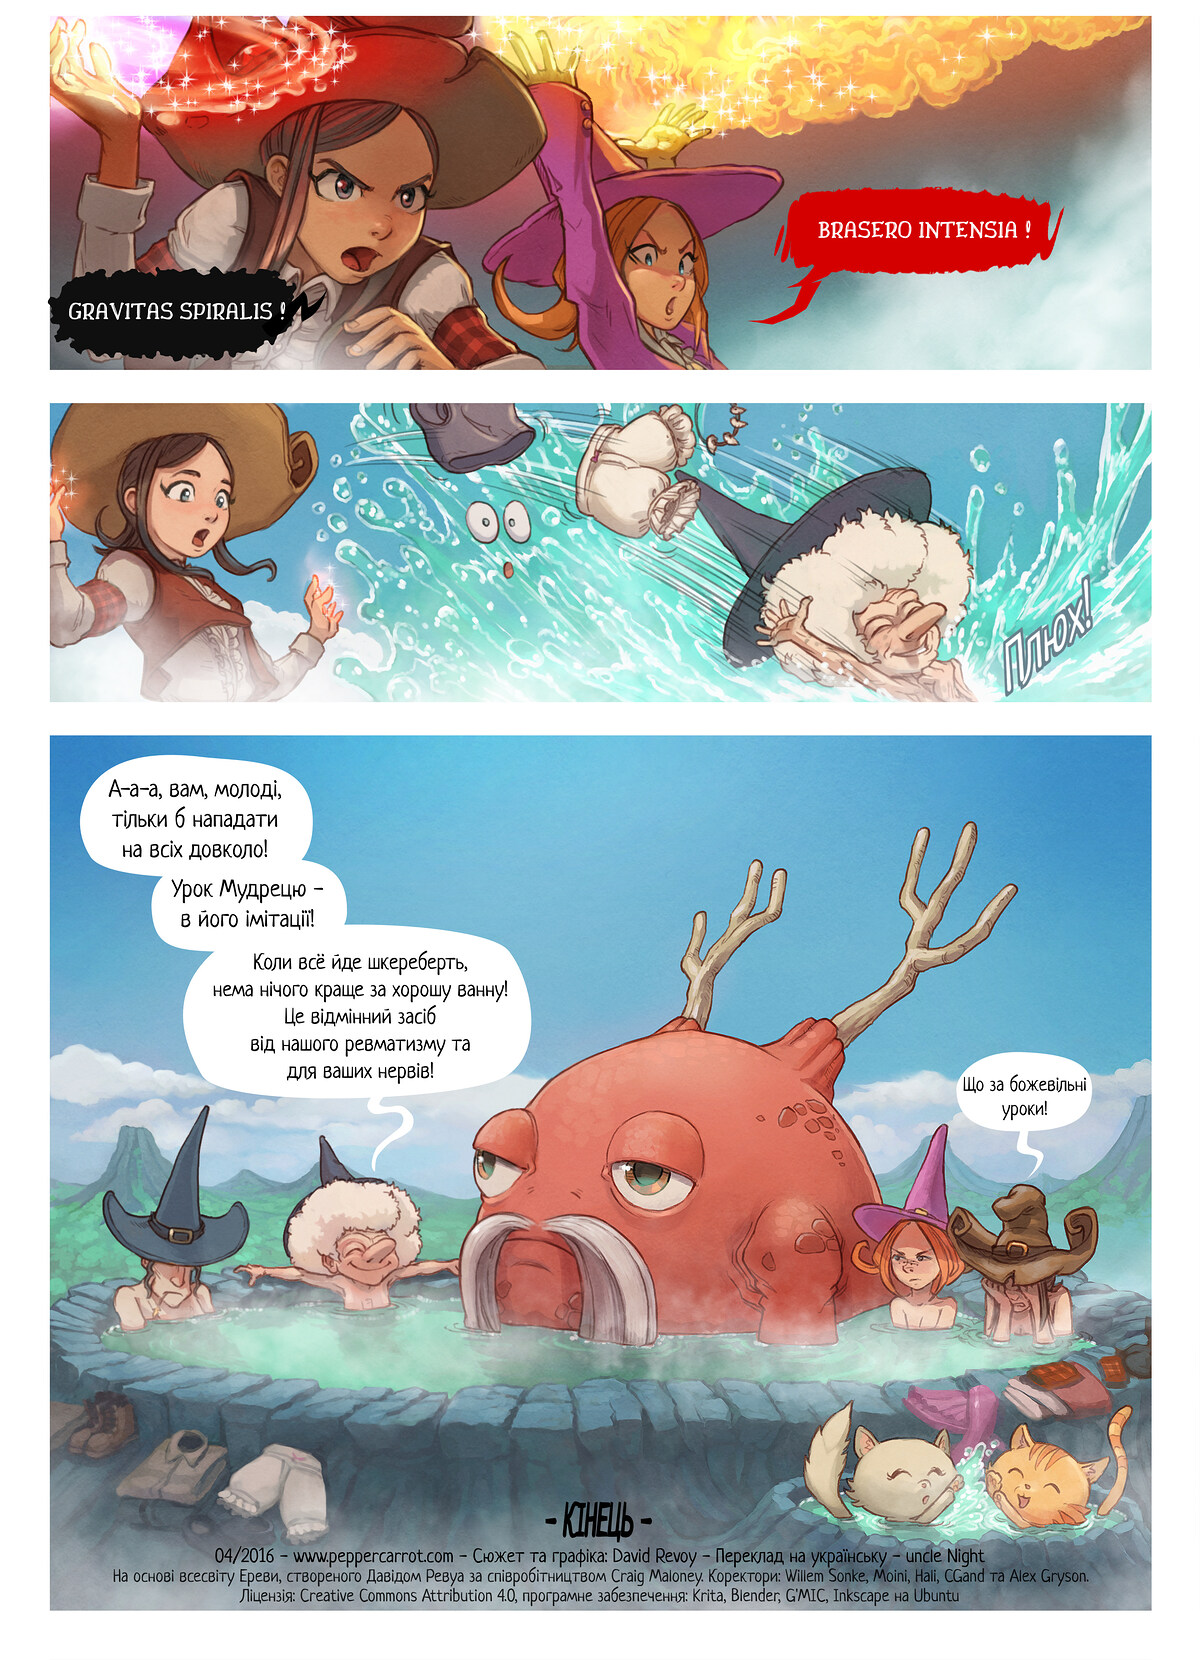 A webcomic page of Pepper&Carrot, епізод 16 [uk], стор. 6